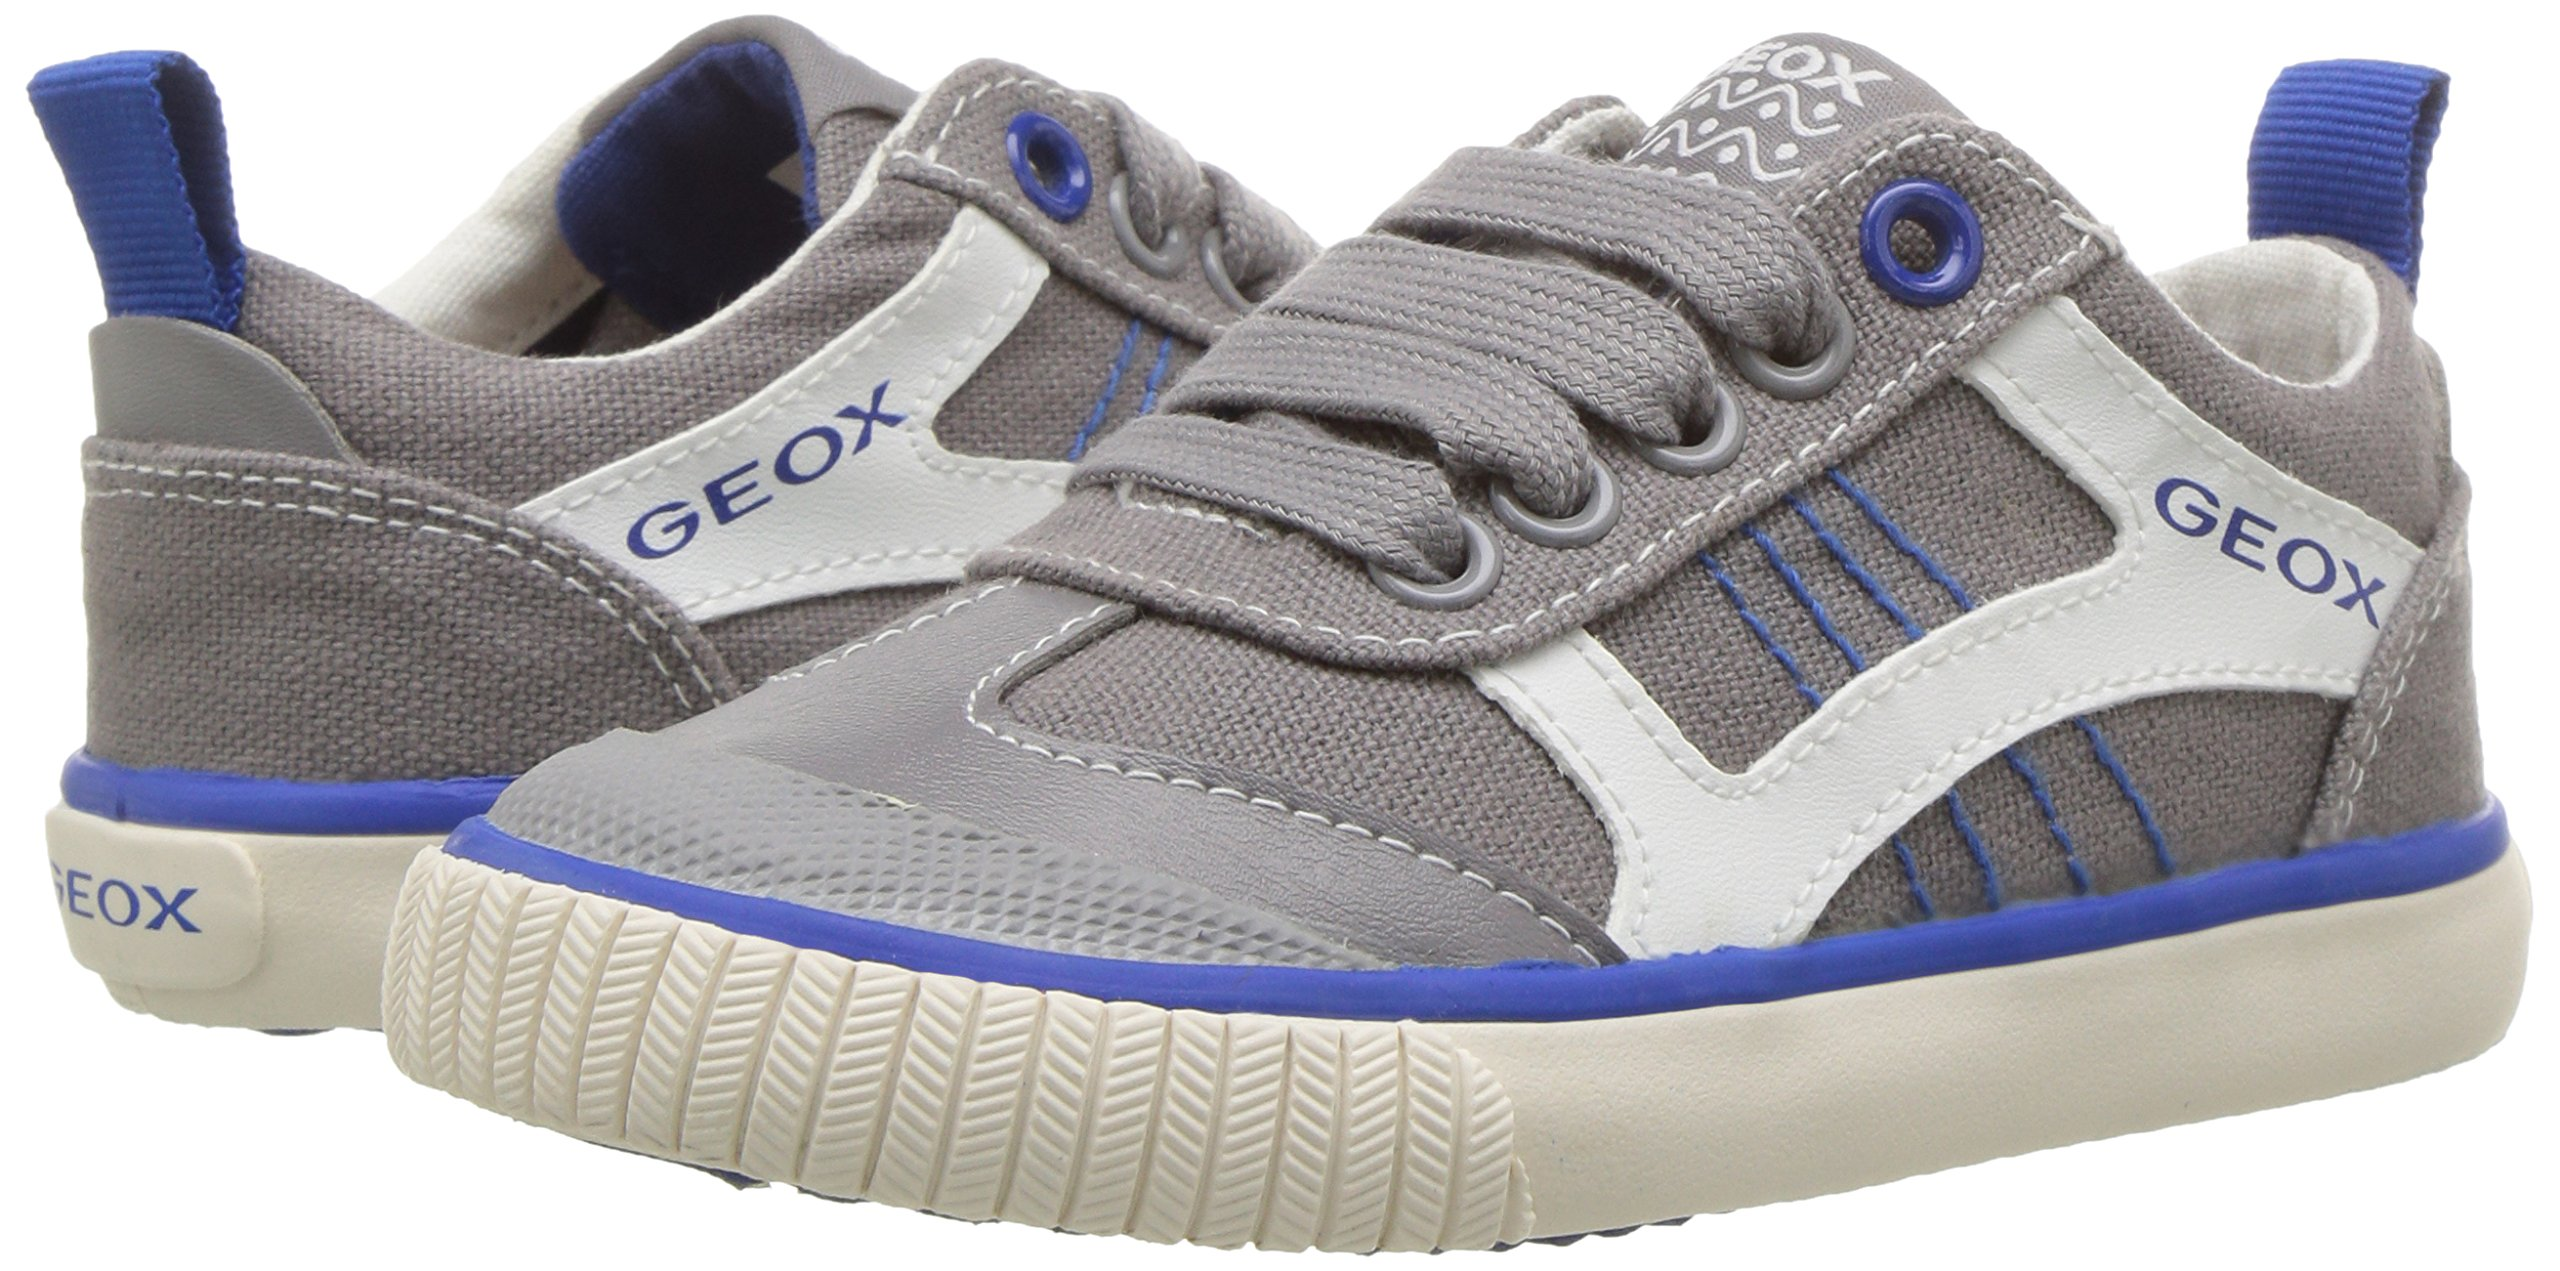 Geox Boys' JR KIWIBOY 89 Slip-On Grey/Royal 36 EU/4 M US Big Kid by Geox (Image #6)